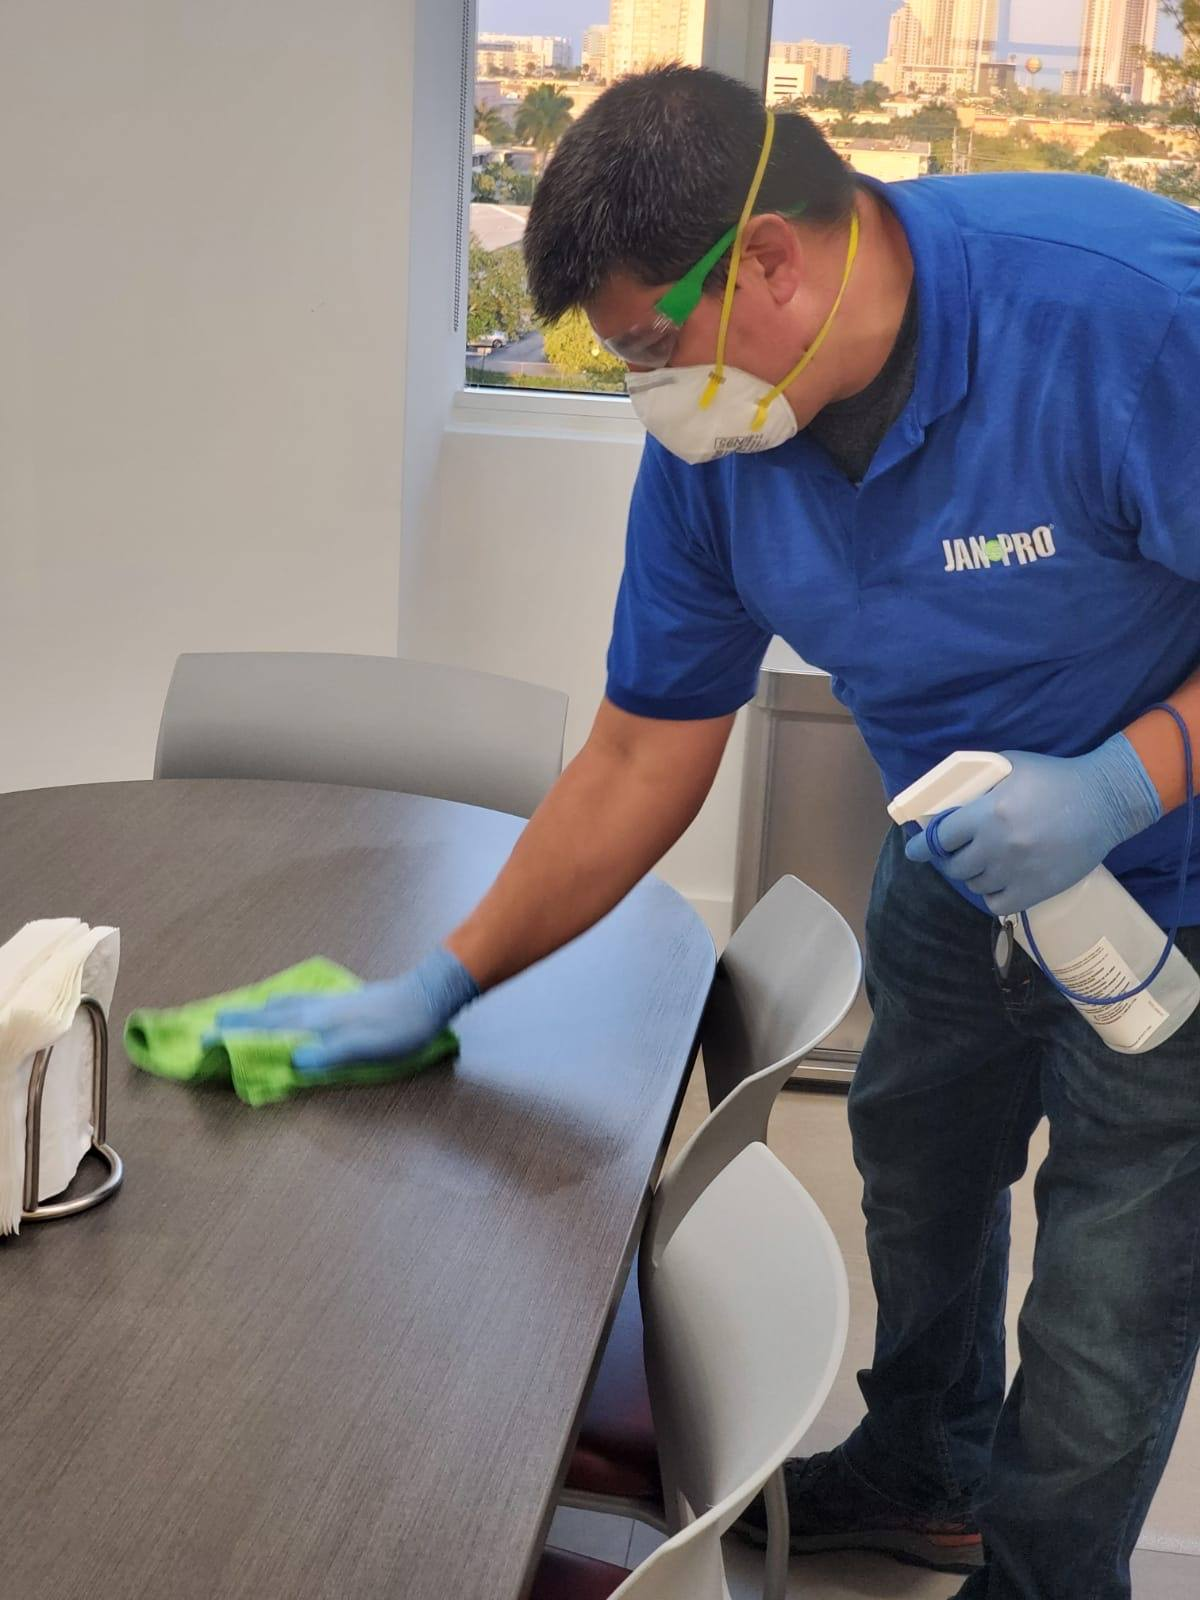 JAN-PRO Offers Commercial Cleaning Services in The Greater Florida Area to Combat the Spread of Covid-19